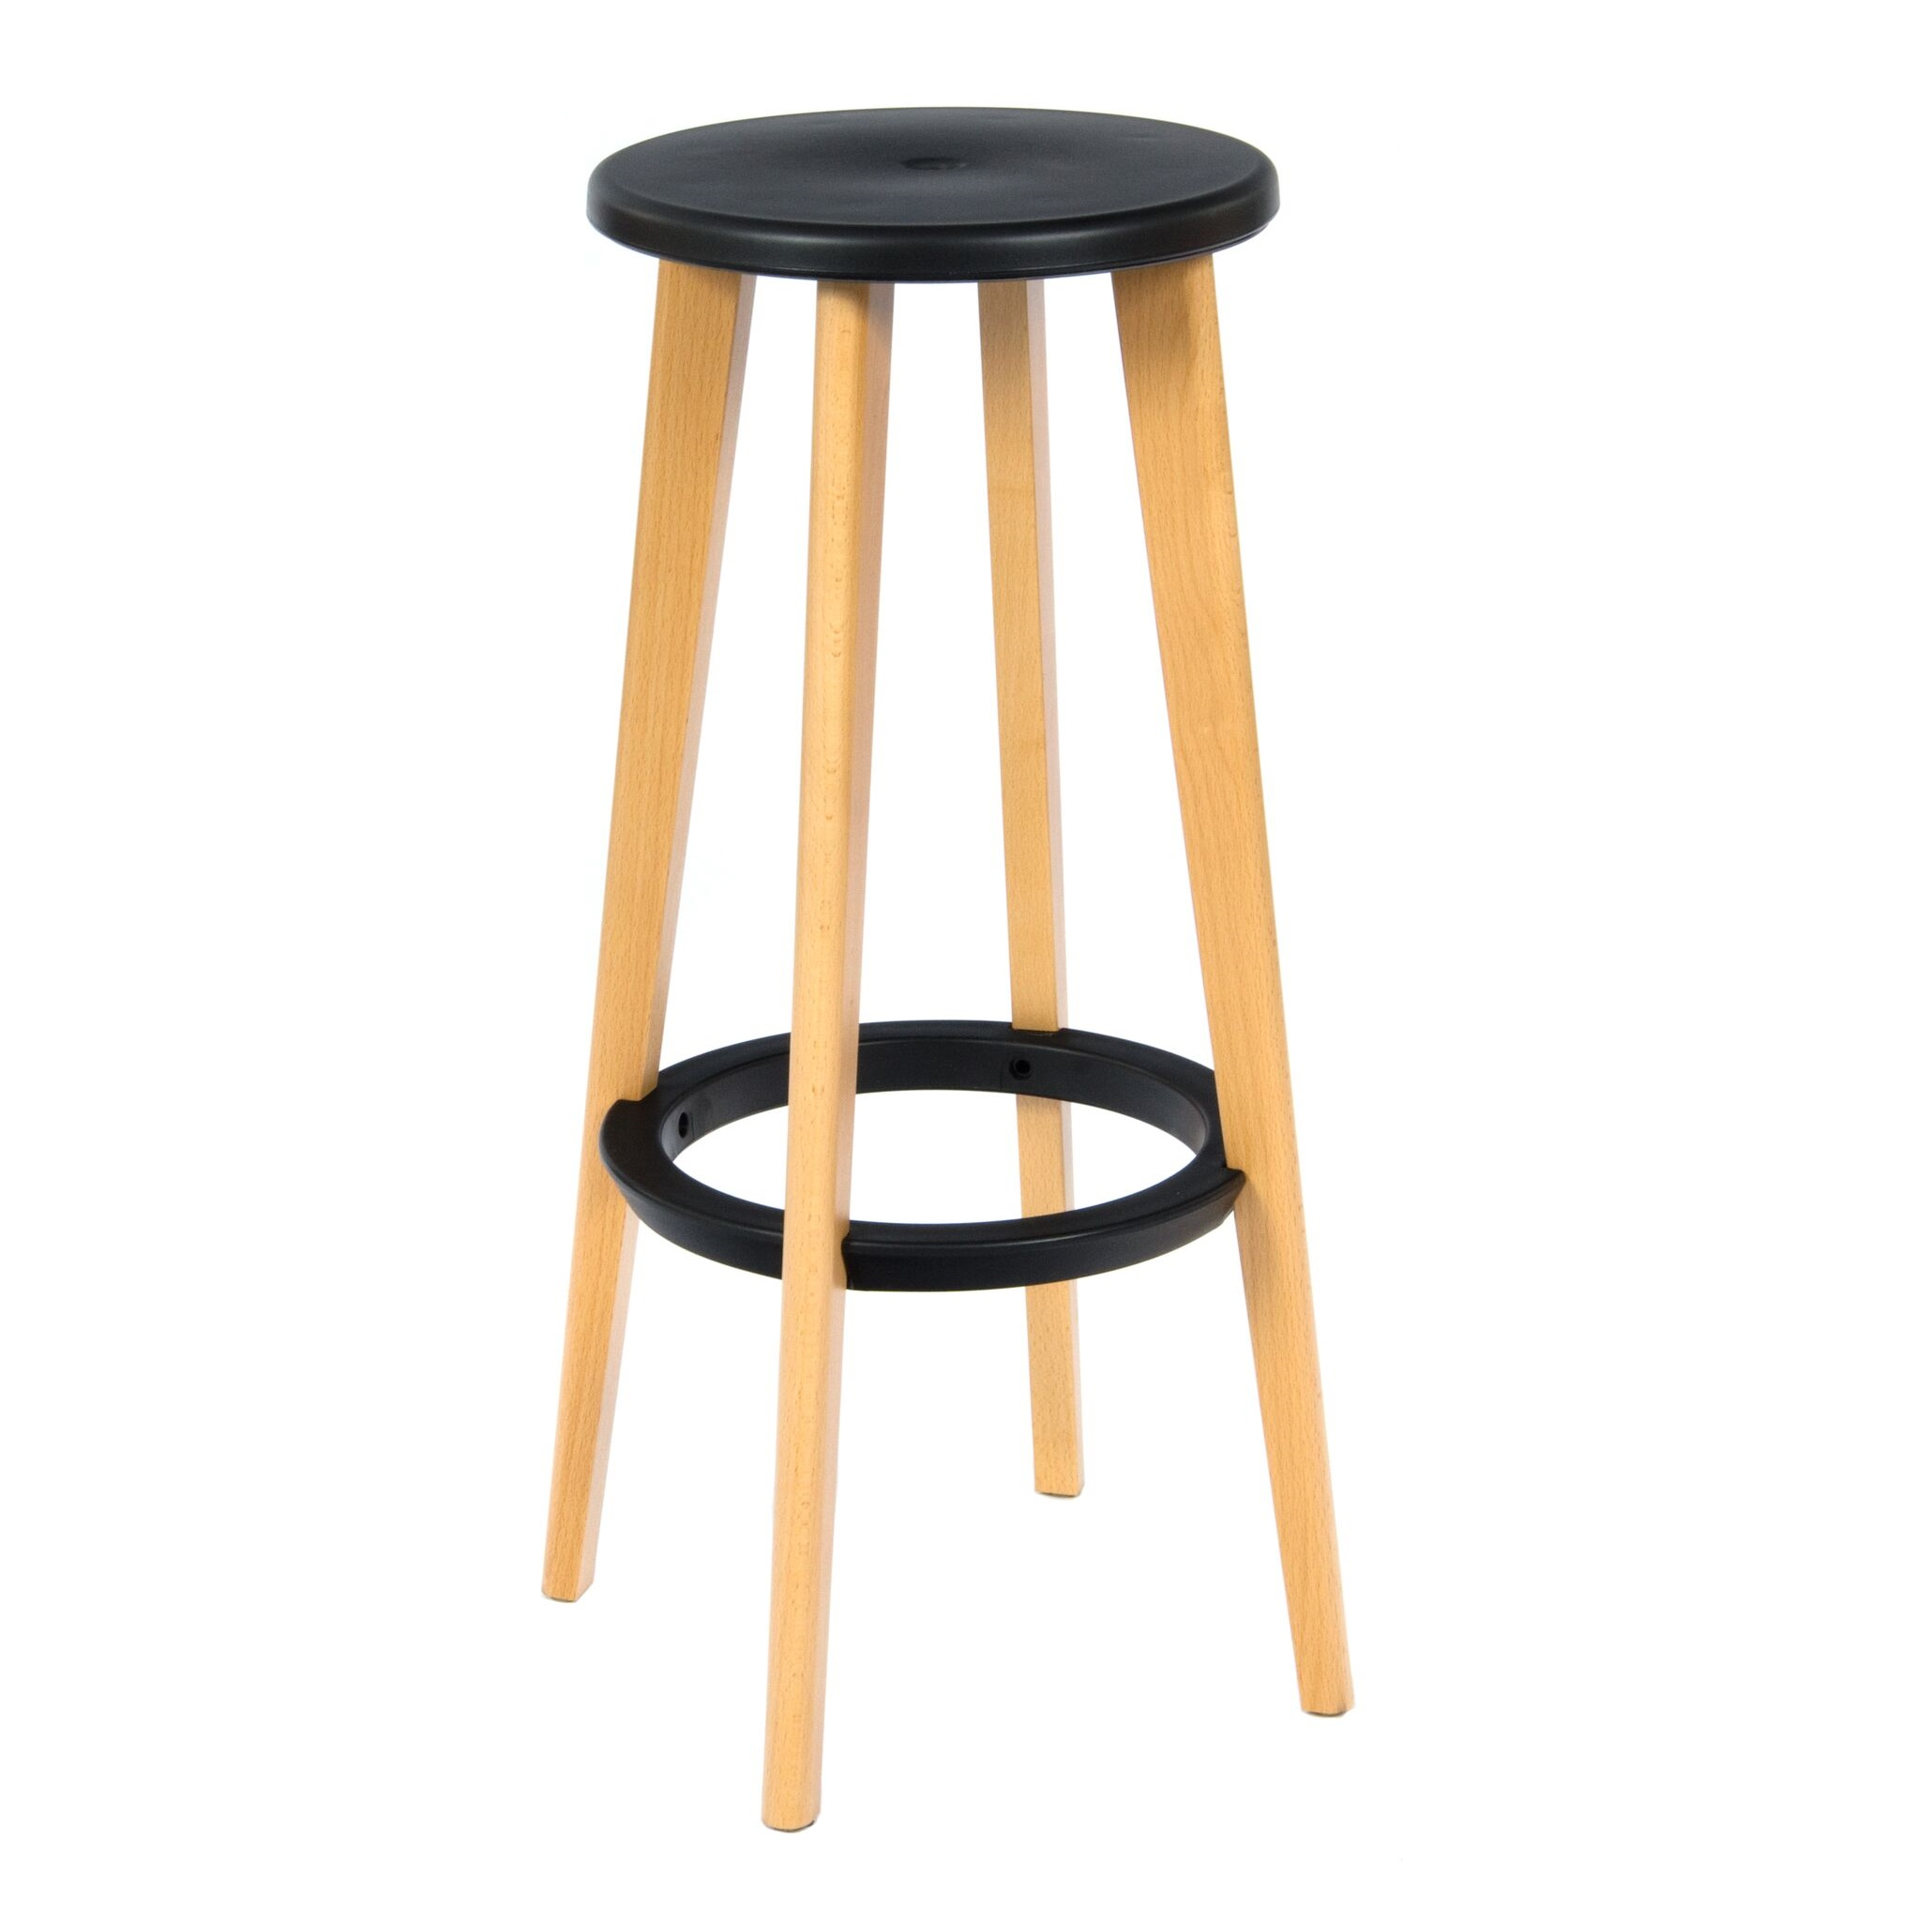 Surprising Eshton Stools Available 2 Heights 2 Colours Ocoug Best Dining Table And Chair Ideas Images Ocougorg